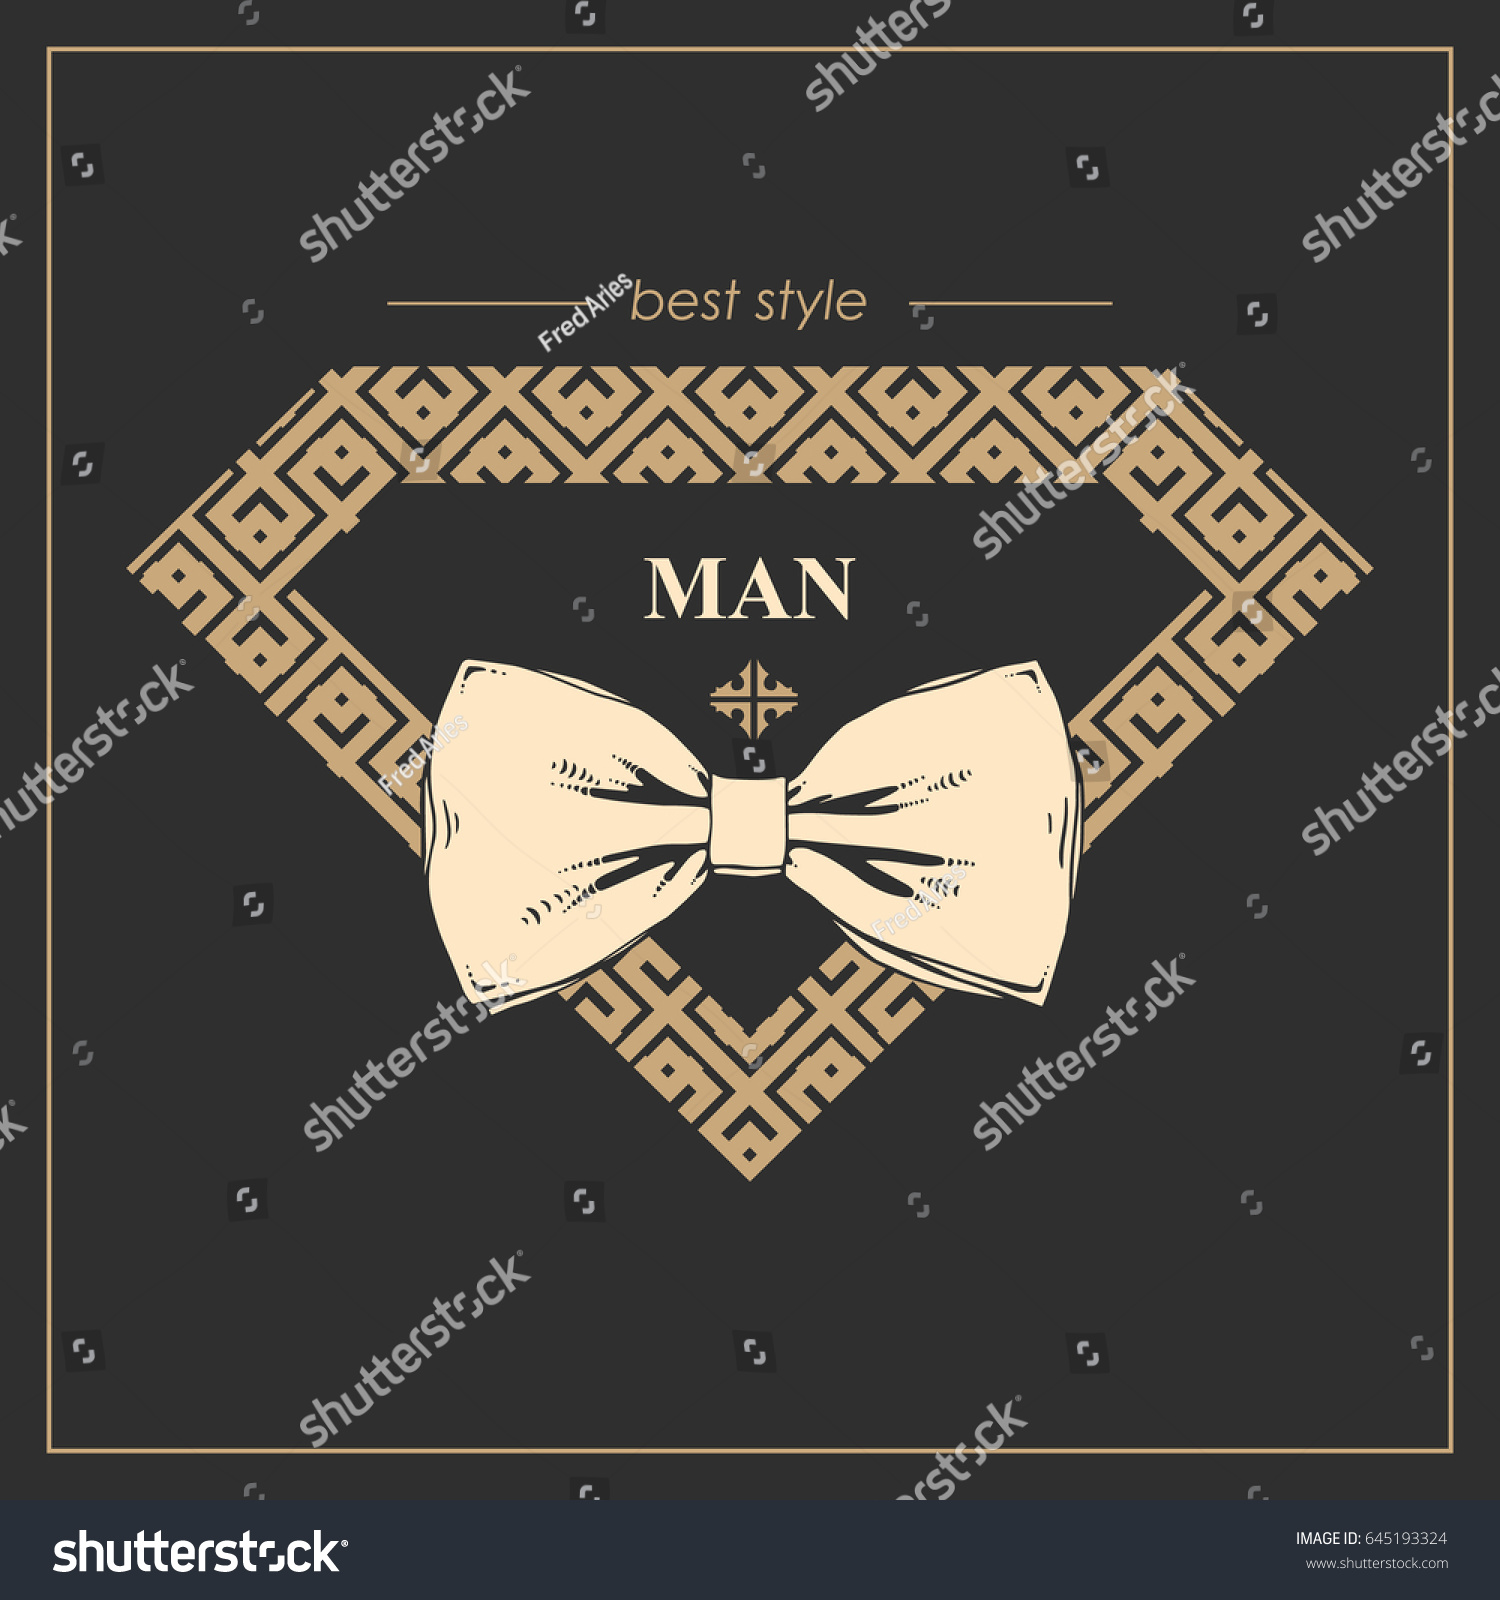 Drawing Bow Tie Logo Clothes Gold Stock Vector HD (Royalty Free ...